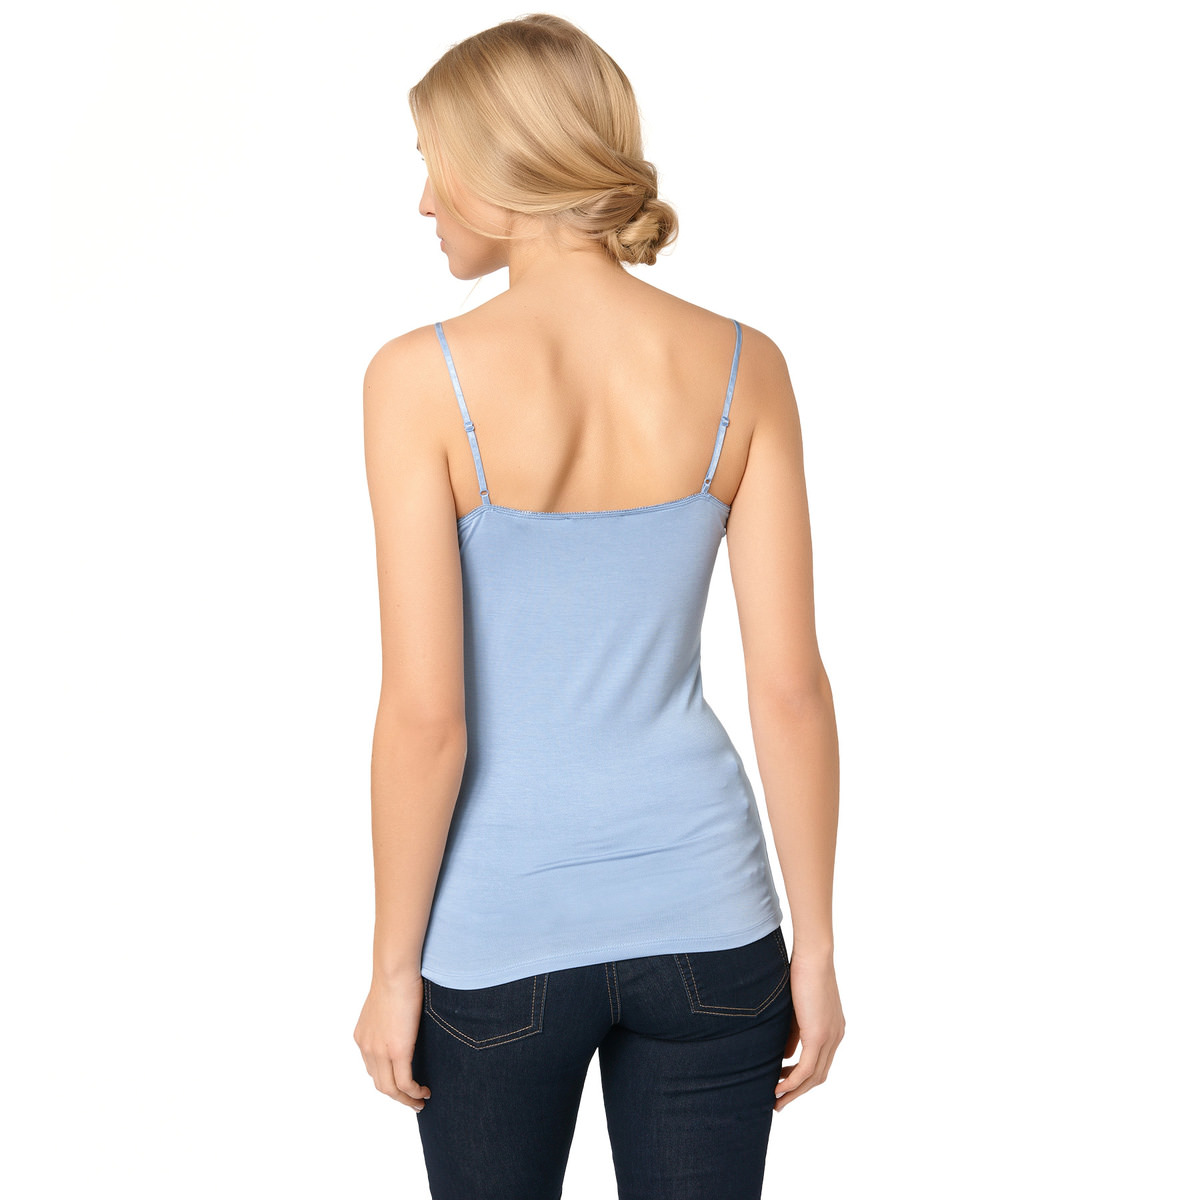 Top Tessa mit Spitzenborte in lily blue